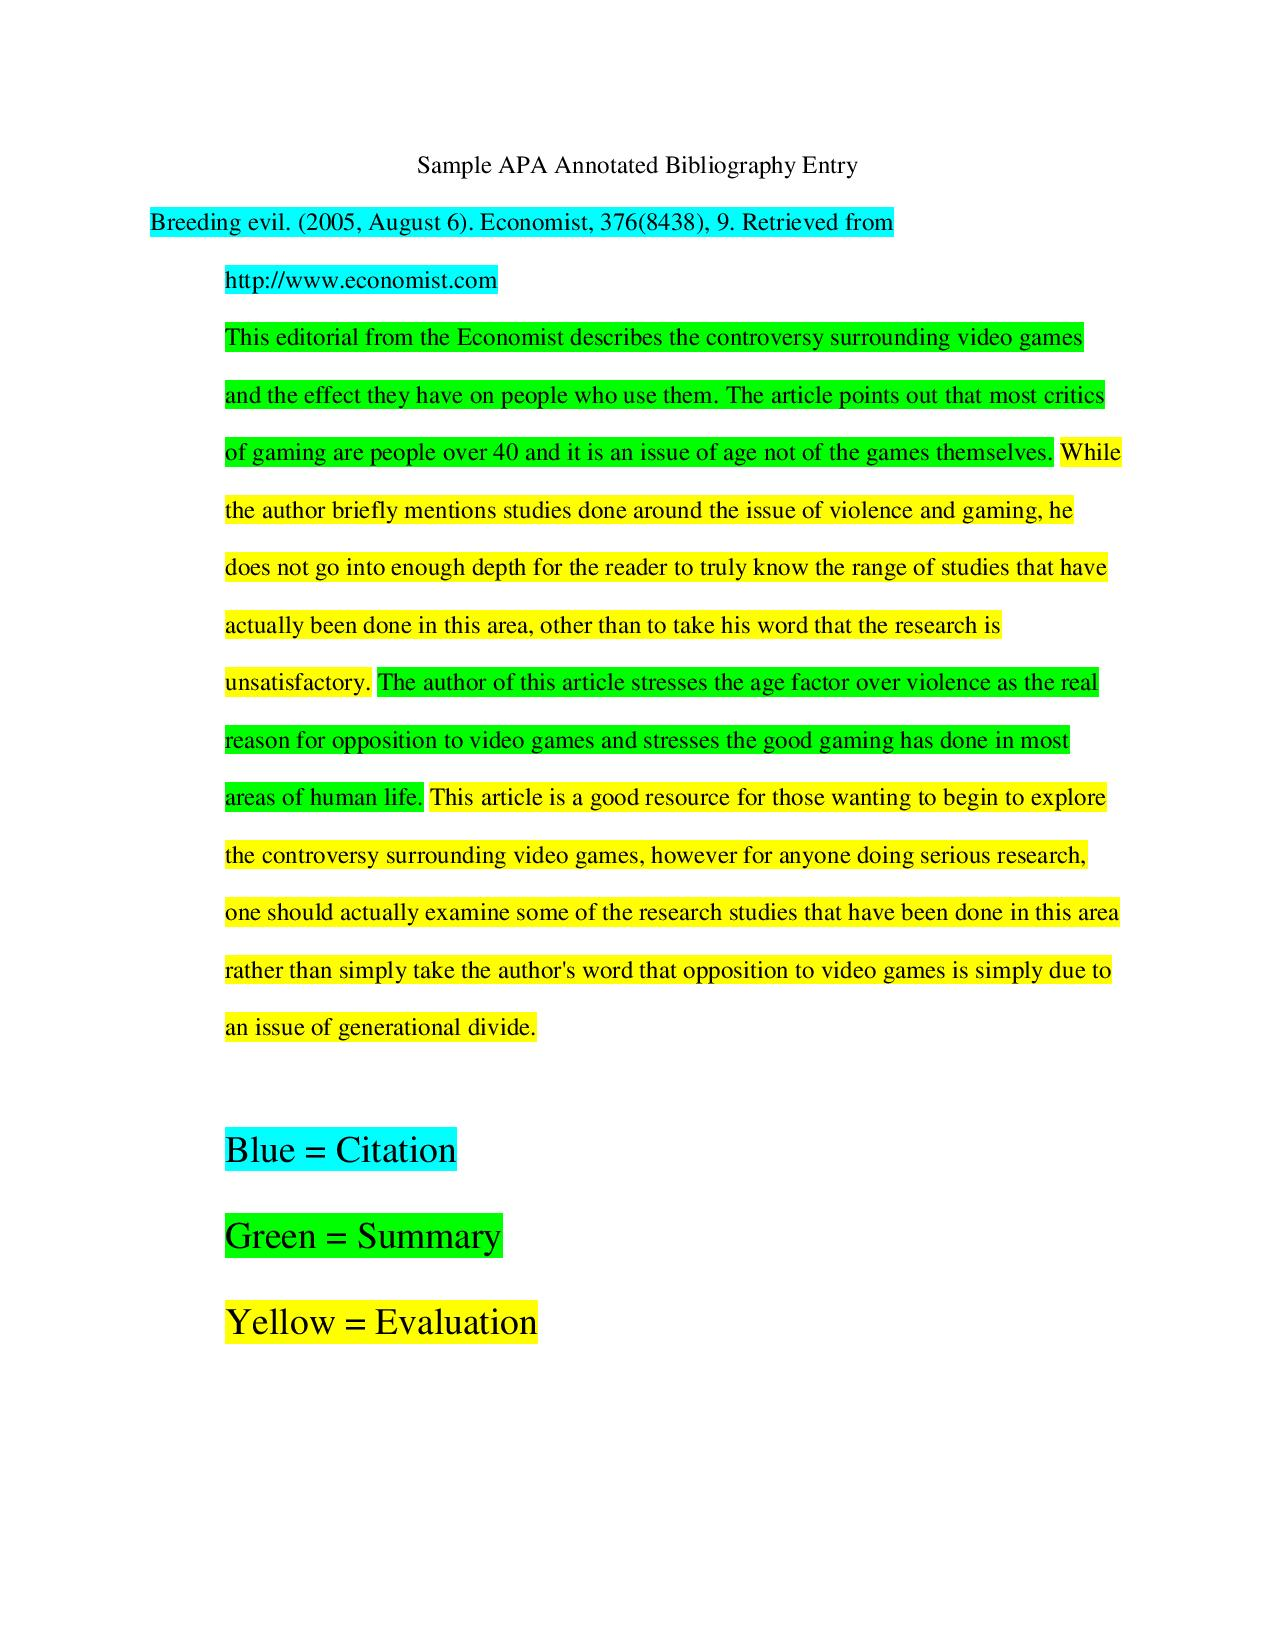 writing an annotated bibliography apa Entries in an annotated bibliography have two parts a citation for each book,  article, website, video, or other information source that you are.